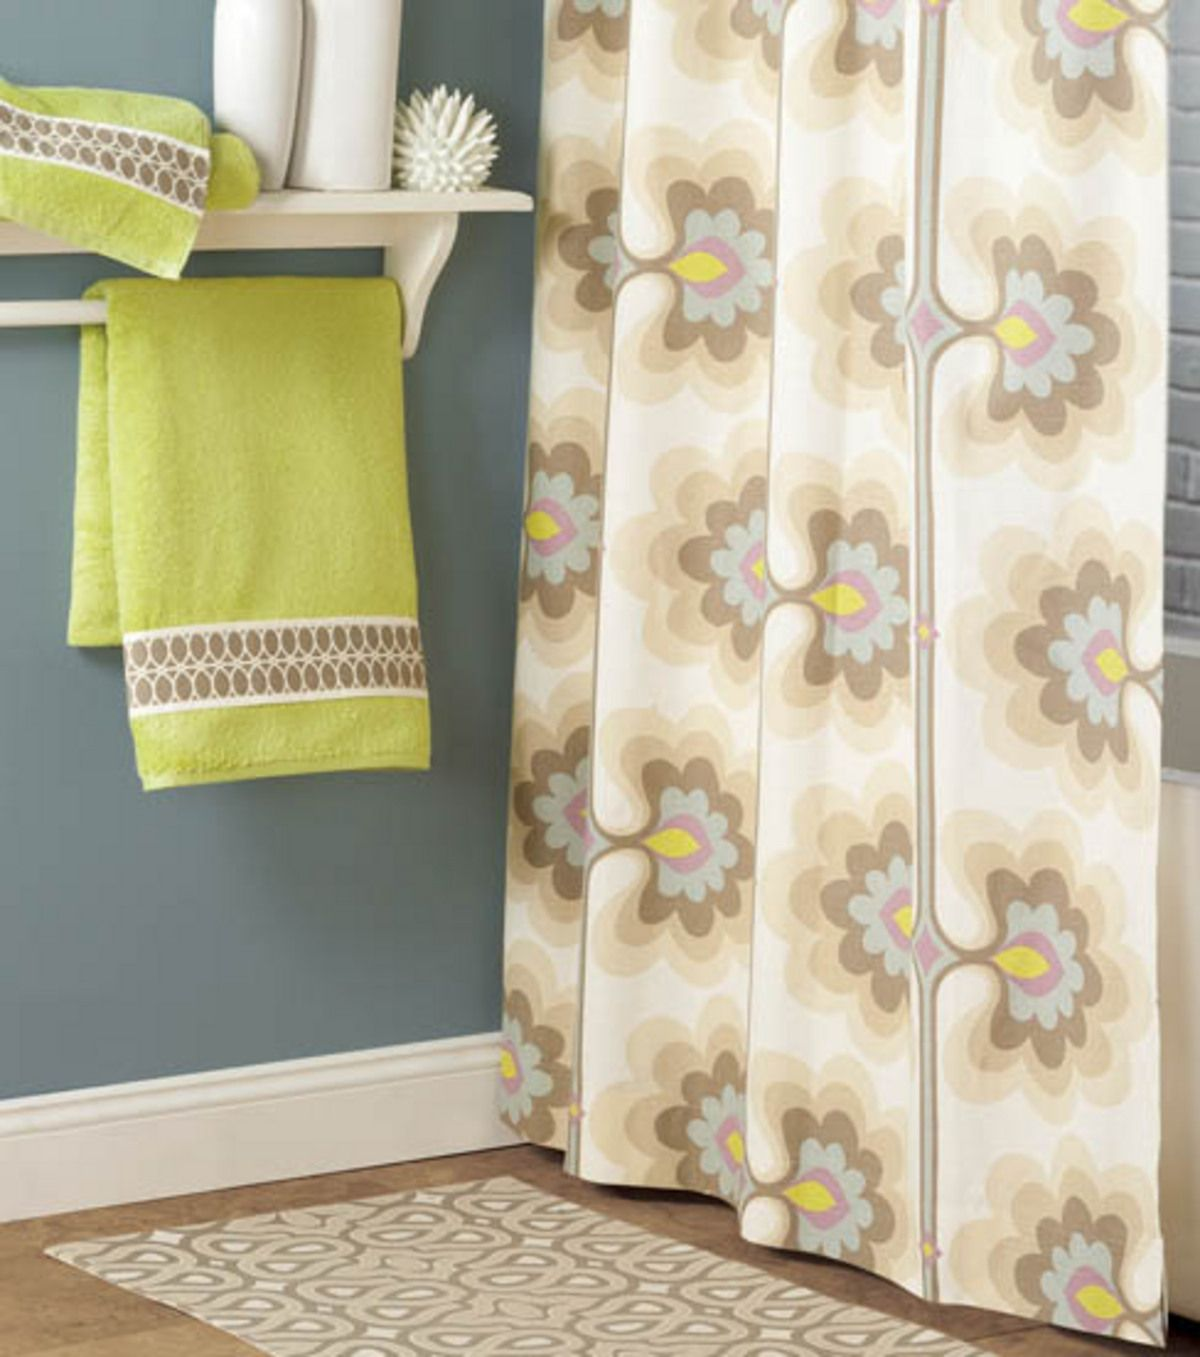 Love This Bathroom Set Up! Find Out How To Craft Your Own Rug, Towels